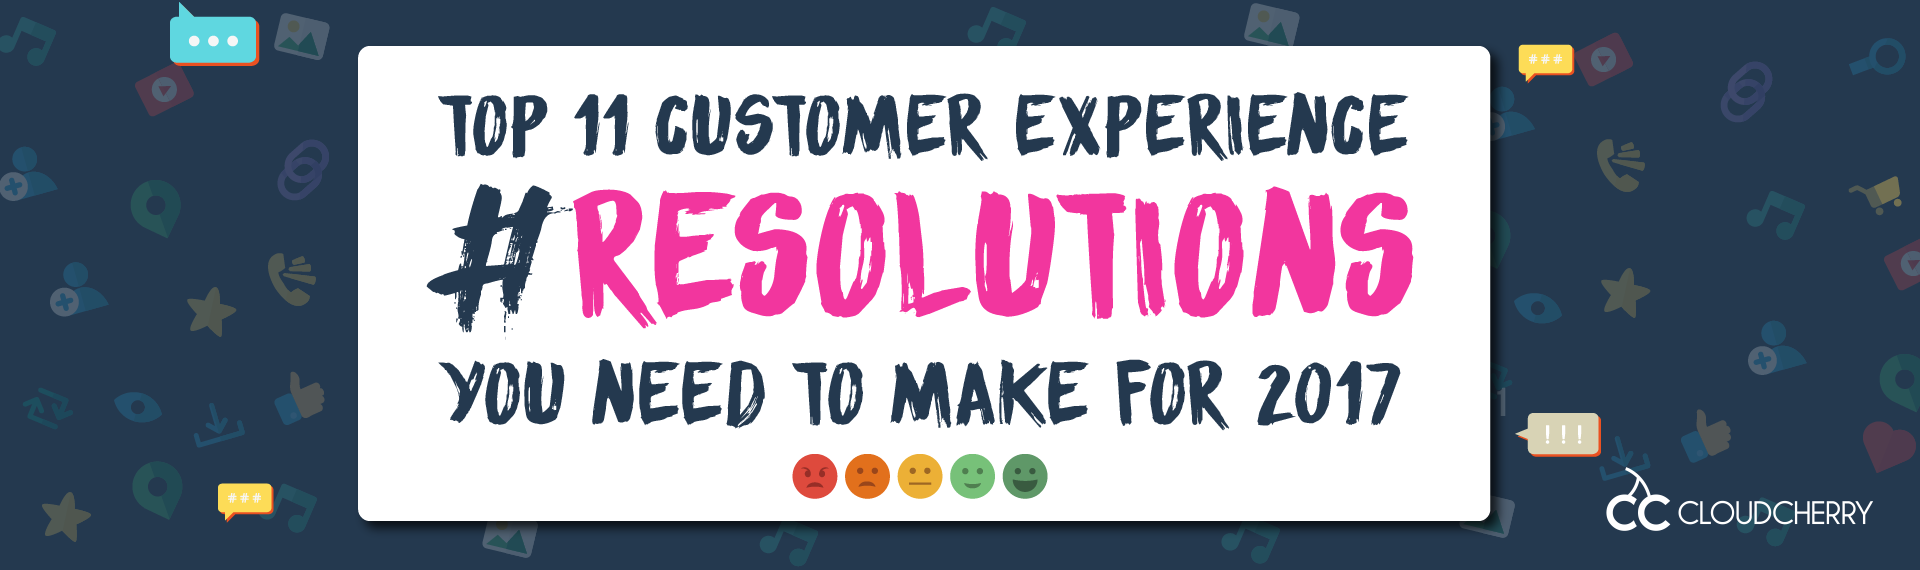 Customer Experience Resolutions